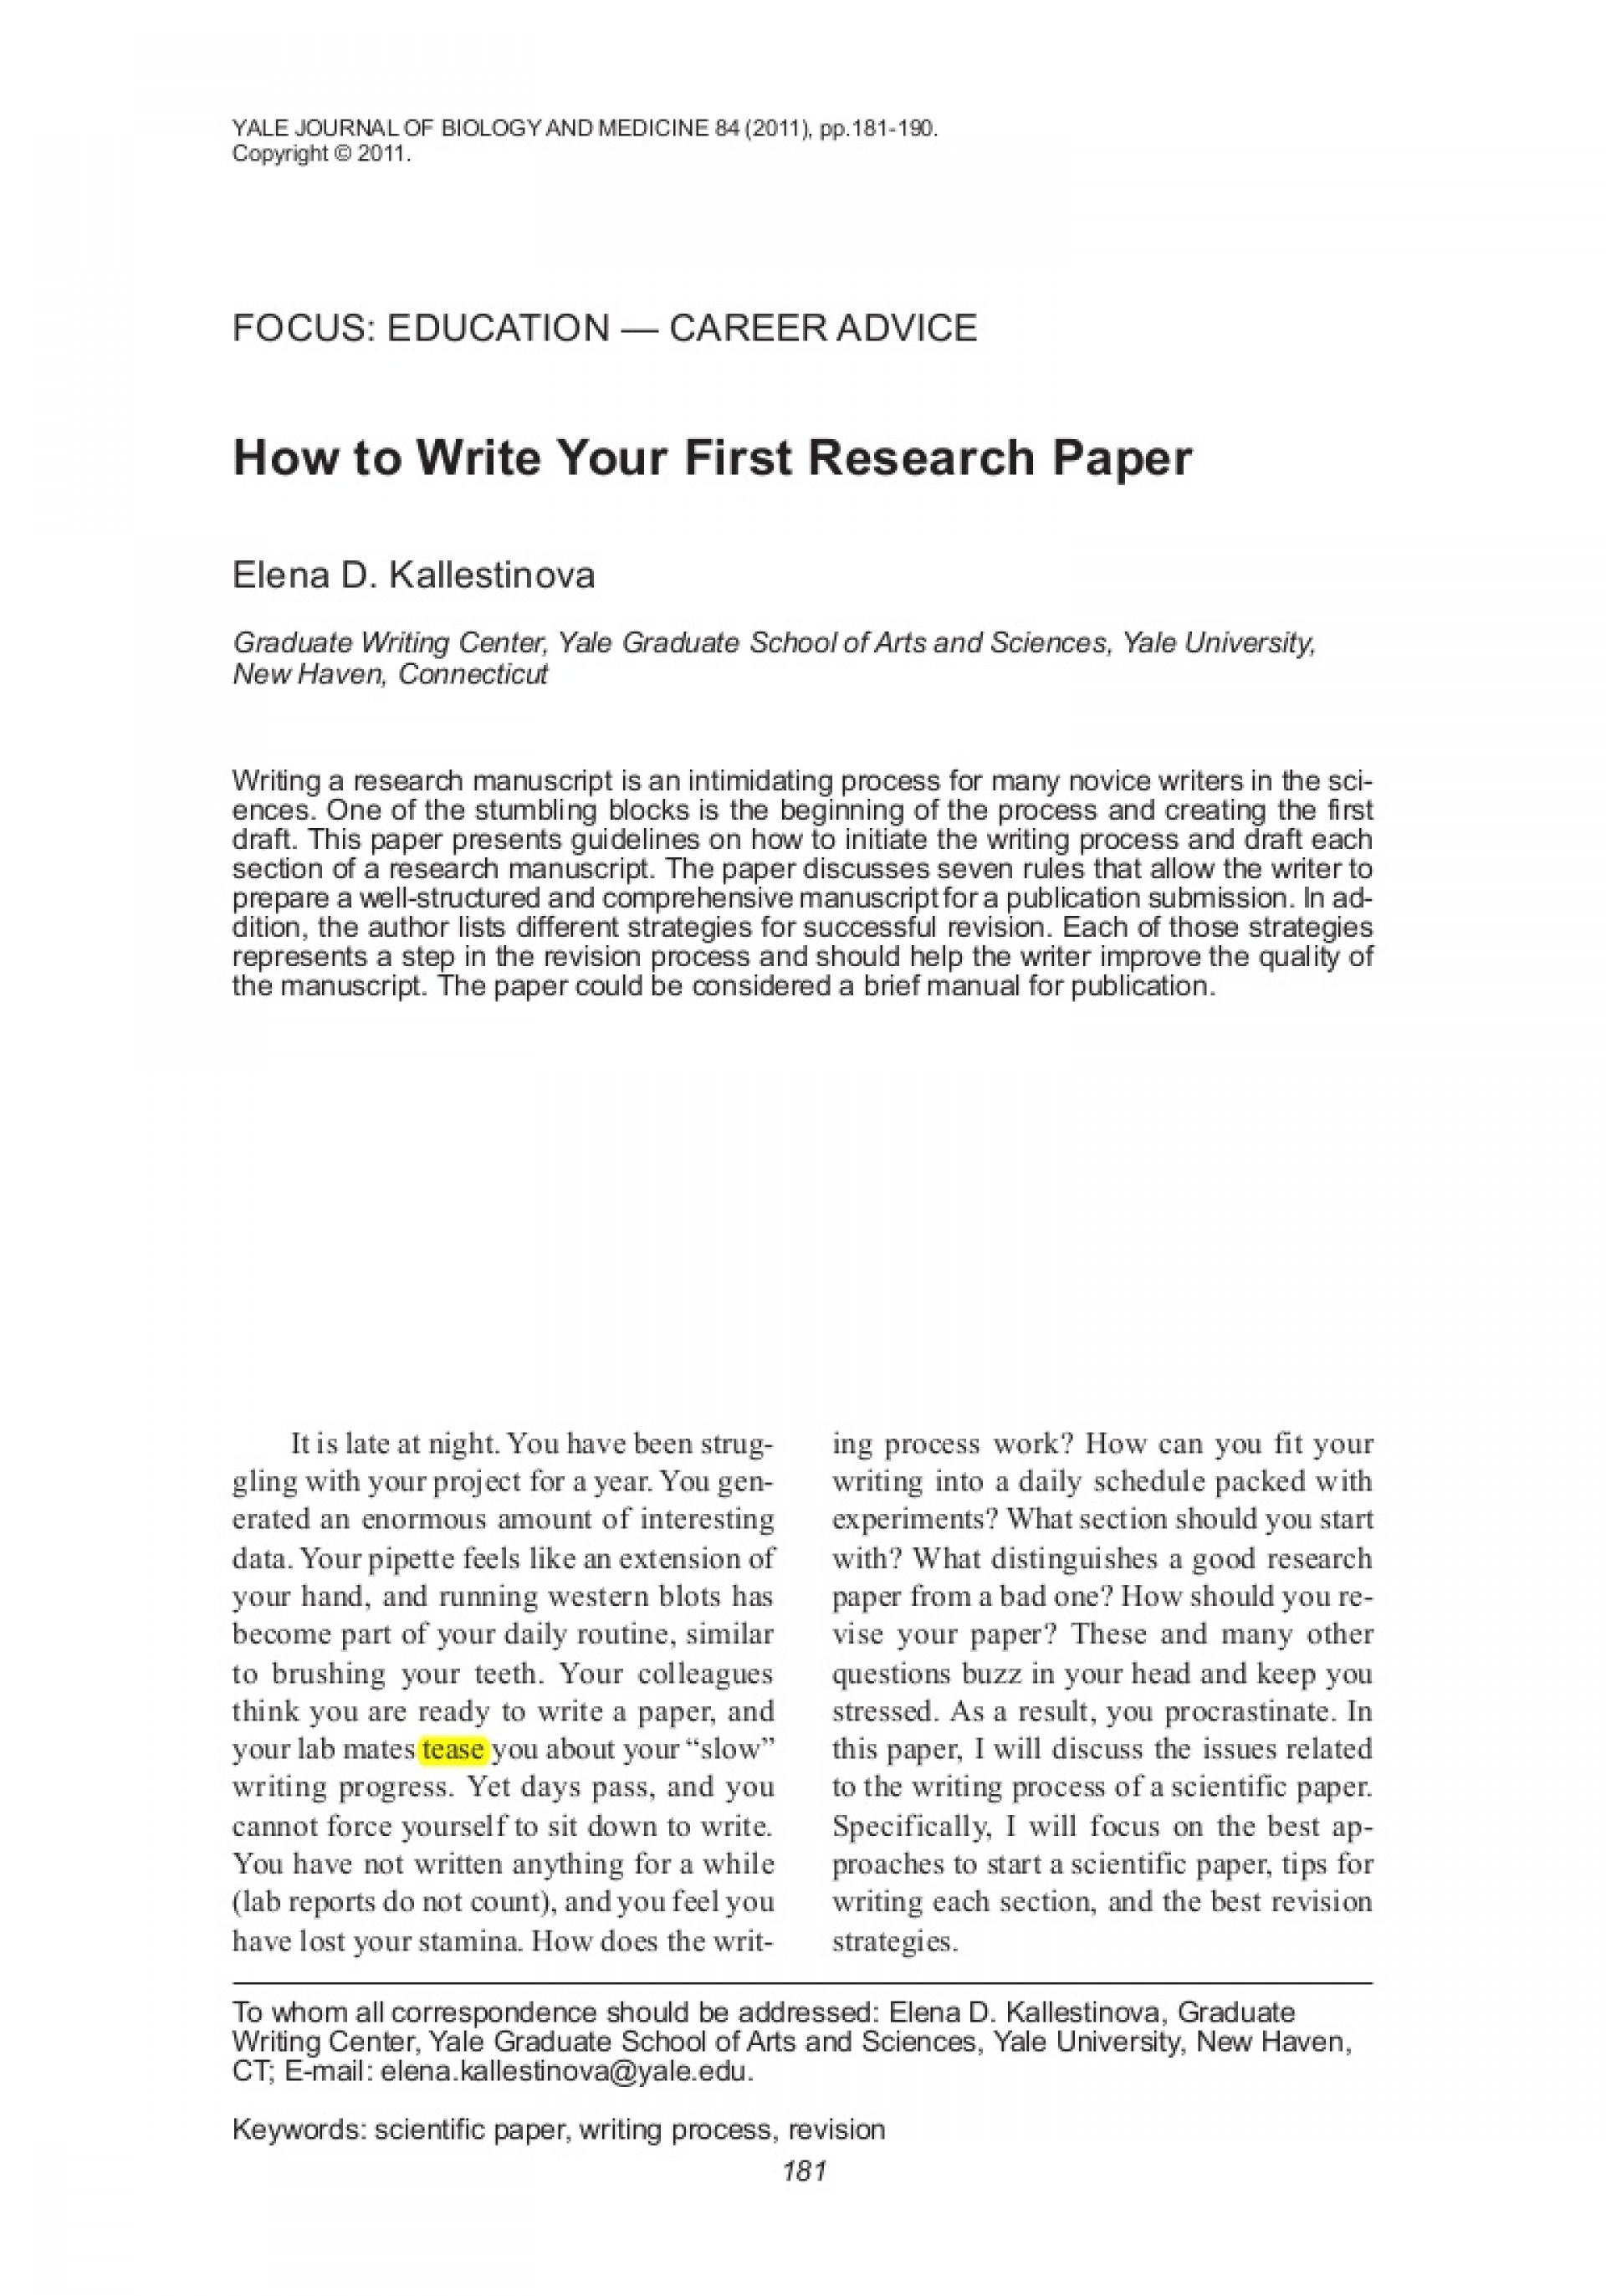 008 Research Paper How To Write Papers Howtowriteyourfirstresearchpaper Lva1 App6891 Thumbnail Outstanding A Proposal In Apa Format Sample History Thesis 1920